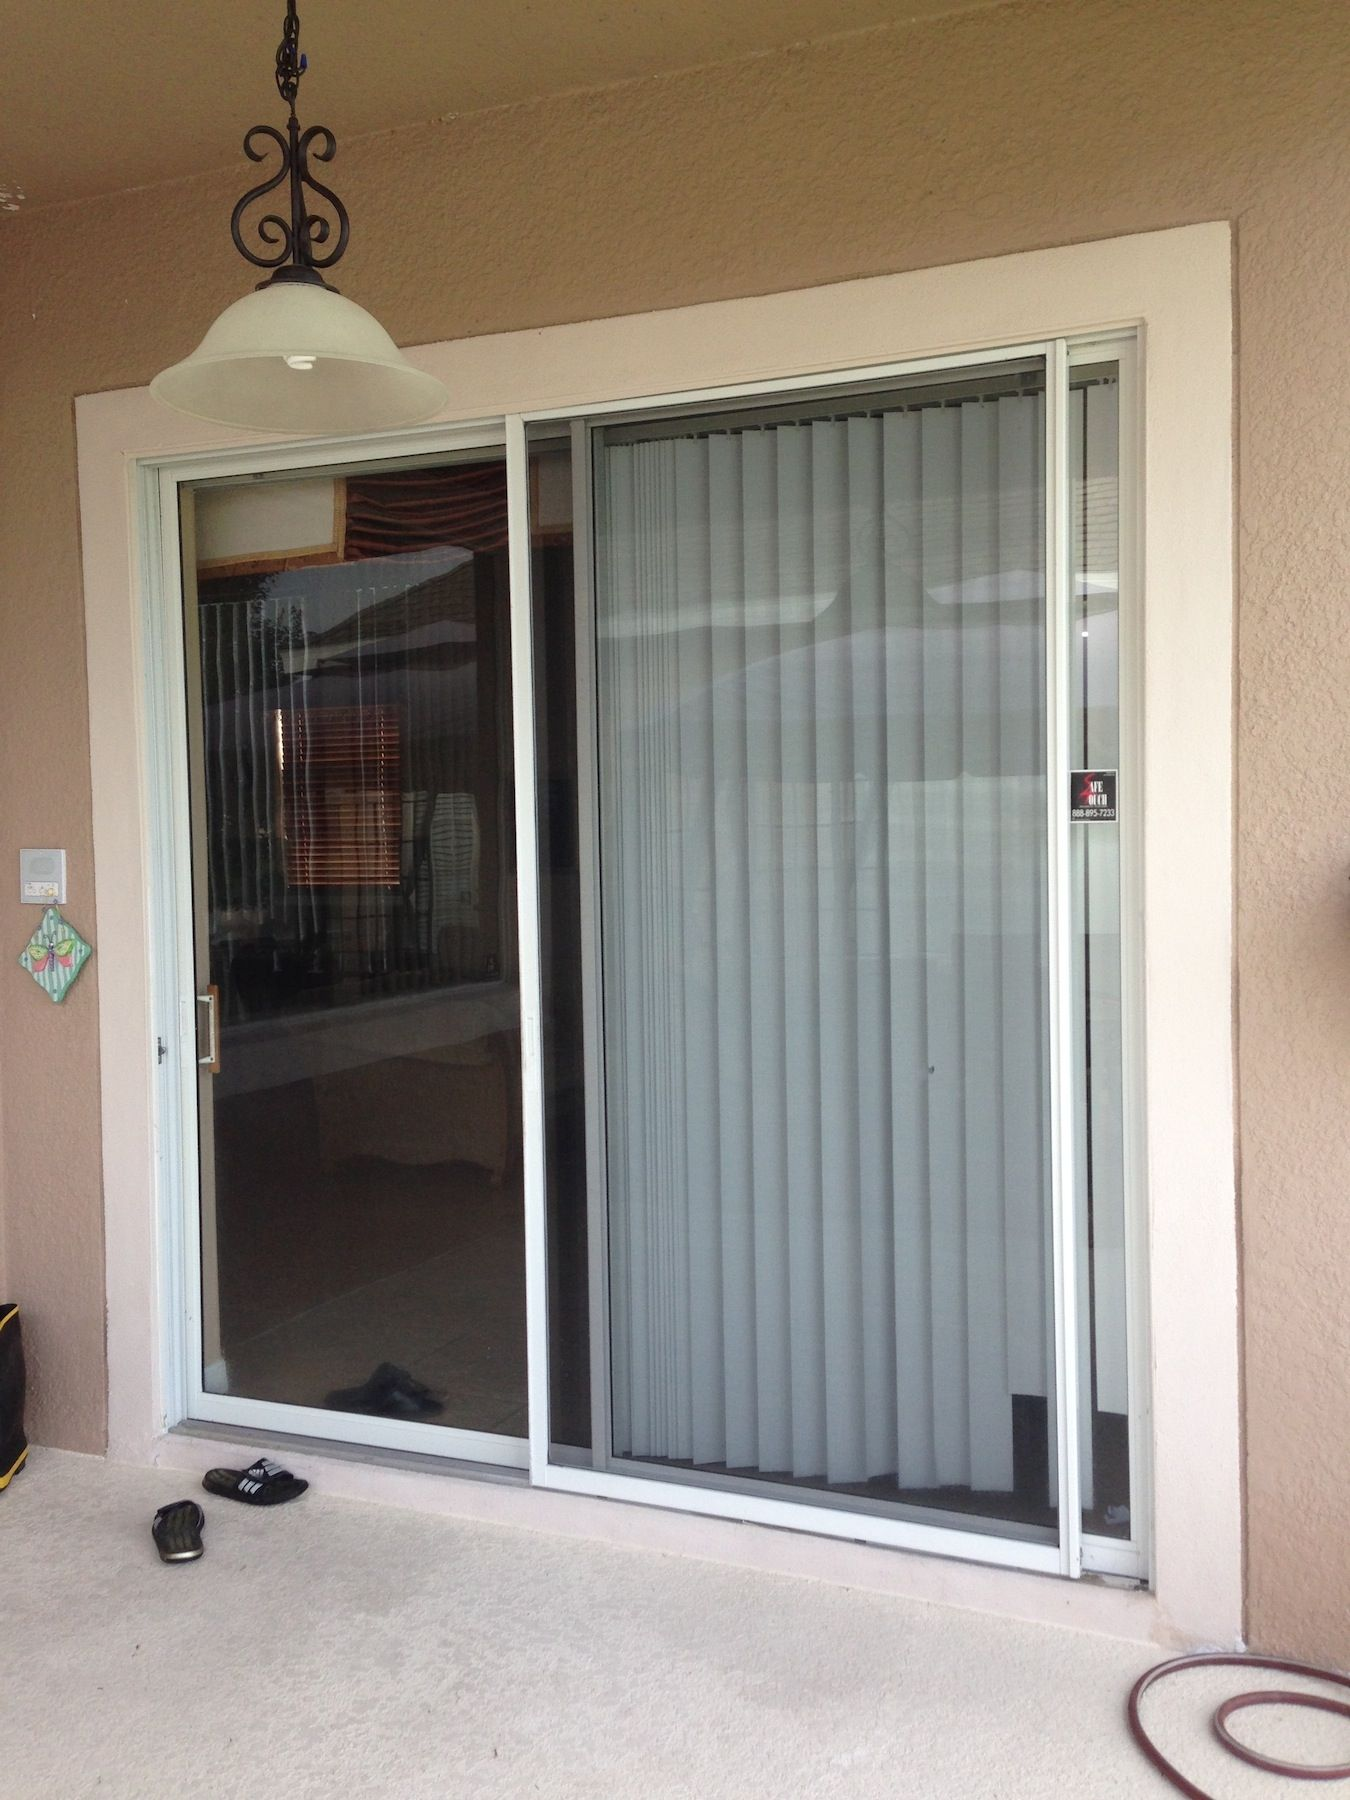 Patio door privacy window film httpbukuweb pinterest patio door privacy window film planetlyrics Images